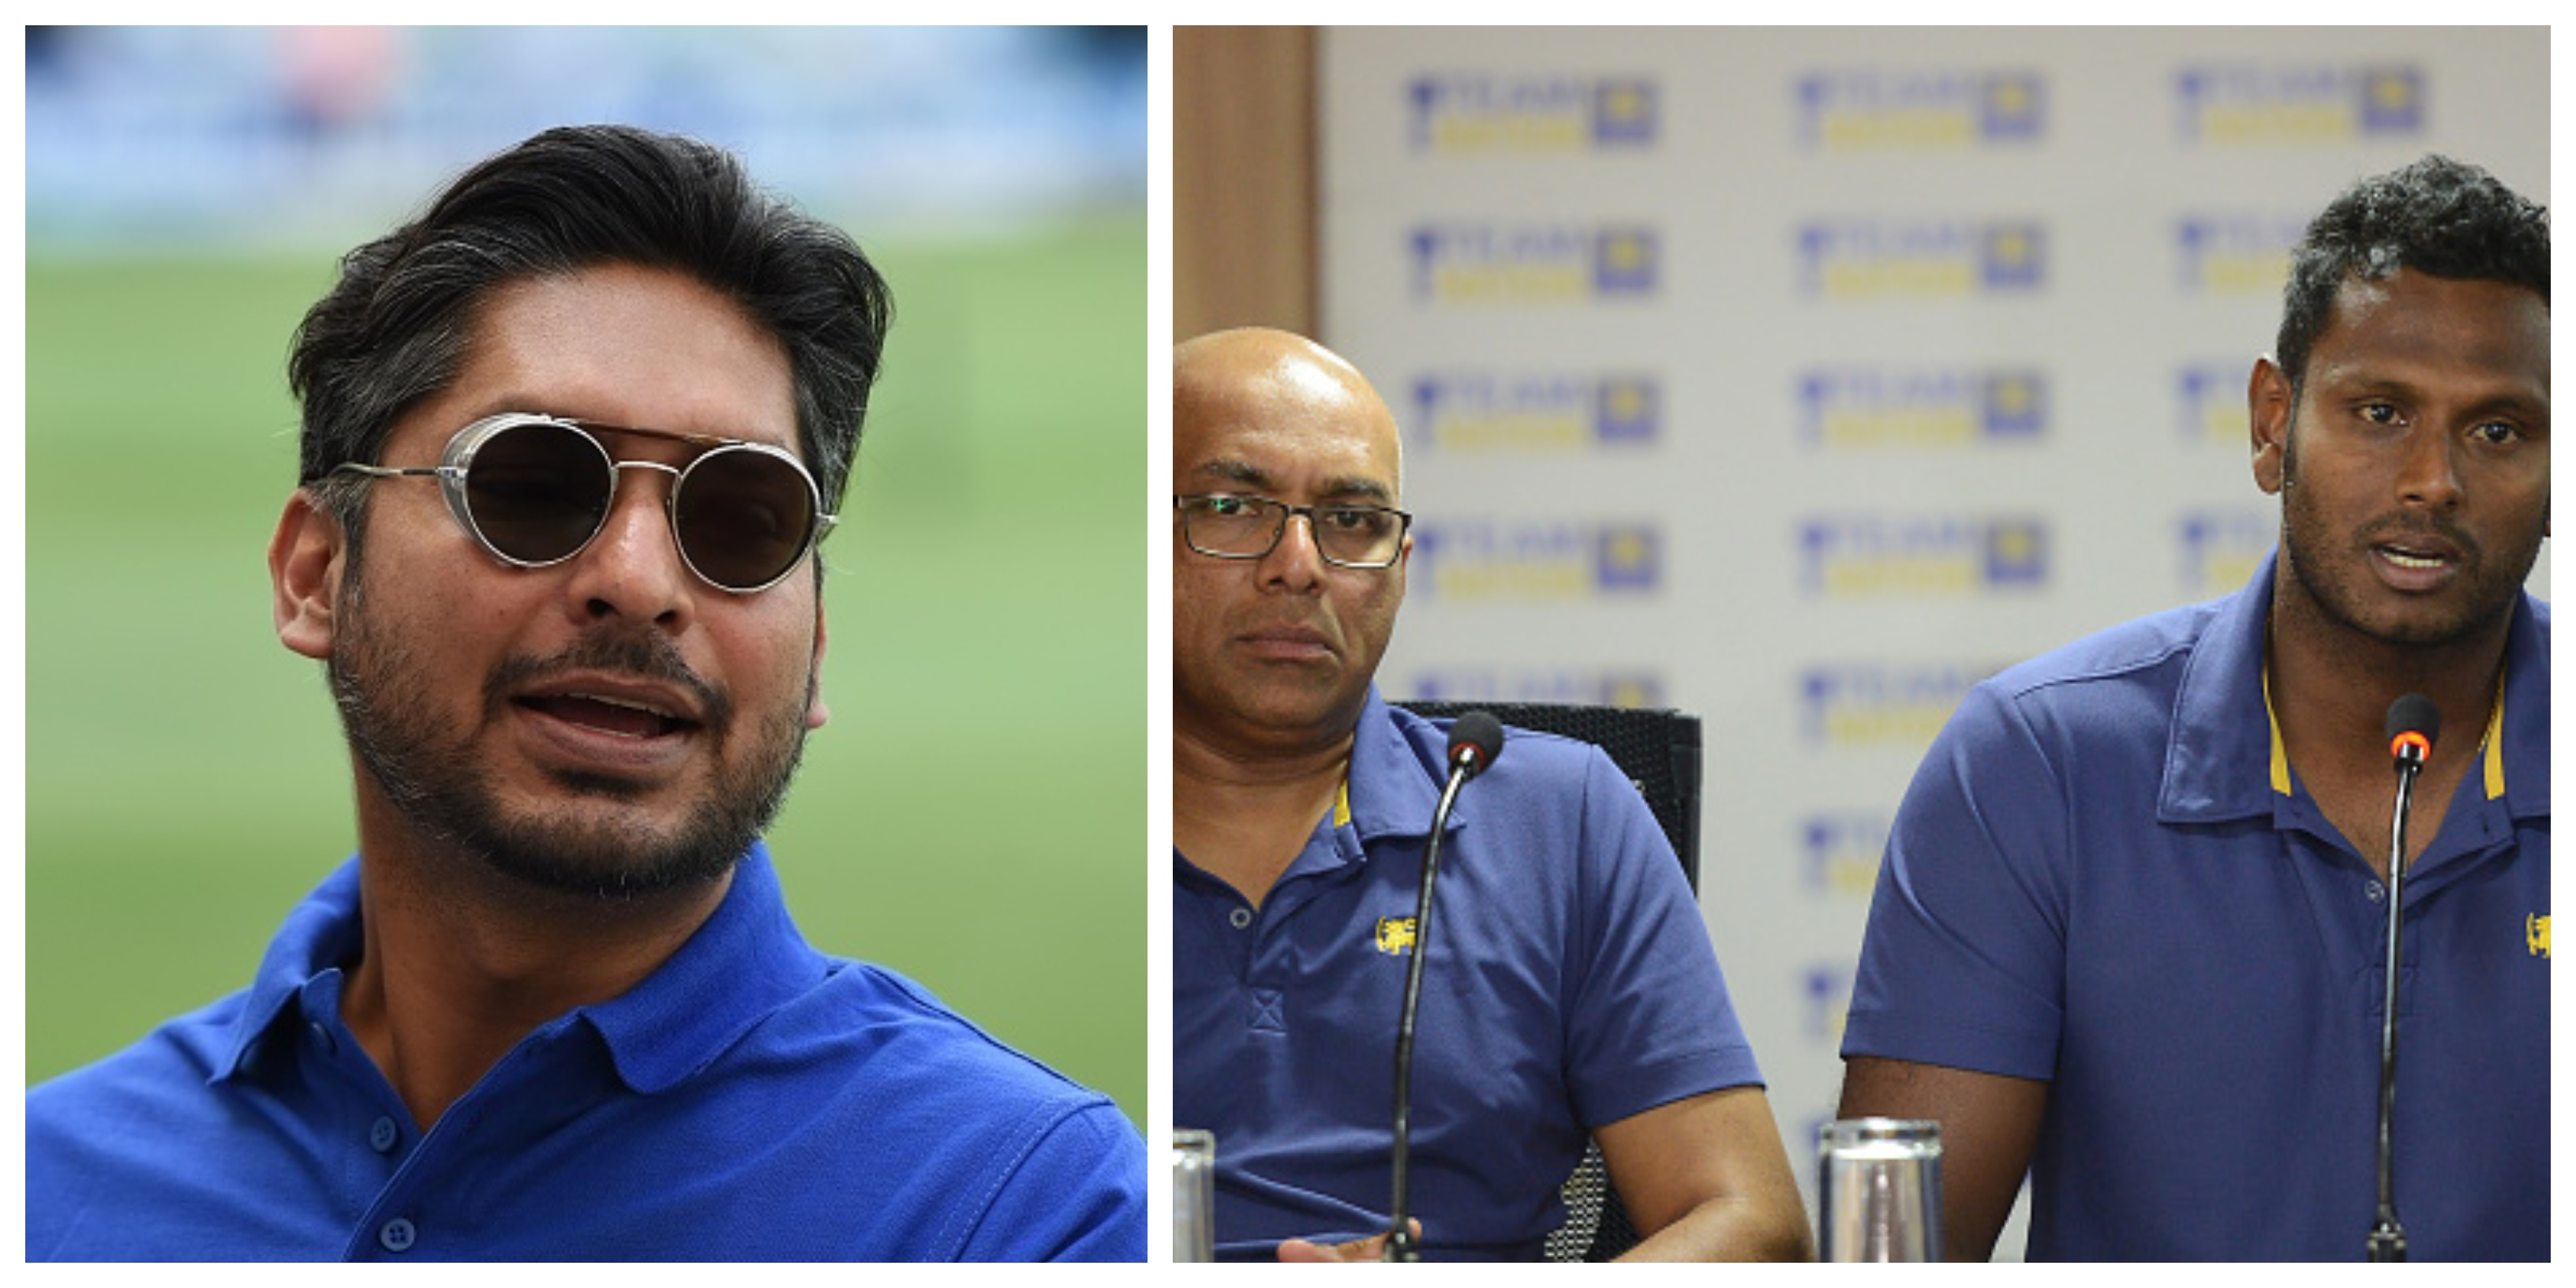 Sanga wants Hathurusinghe and Mathews to resolve their issues